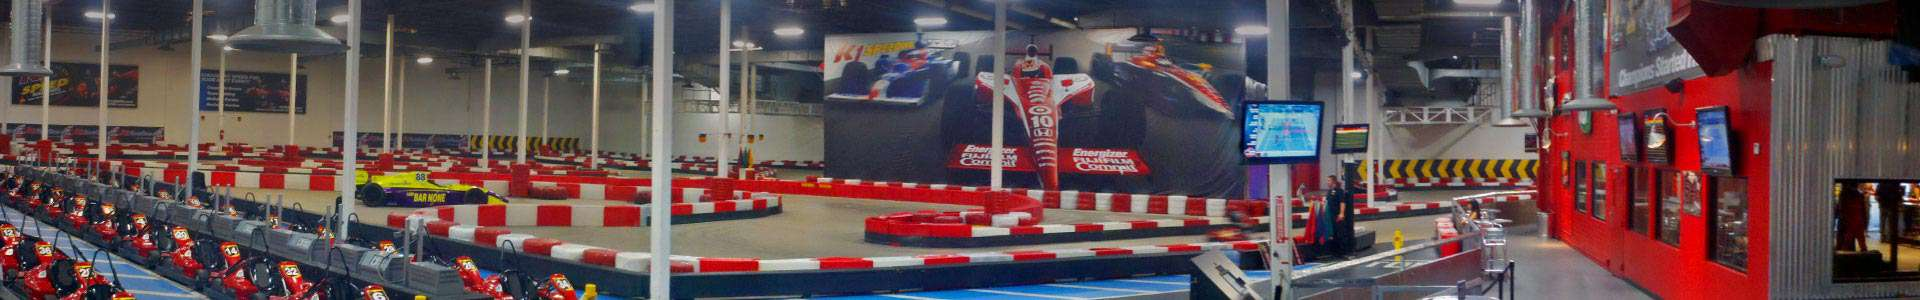 K1 Speed Indoor Go Kart Racing Phoenix